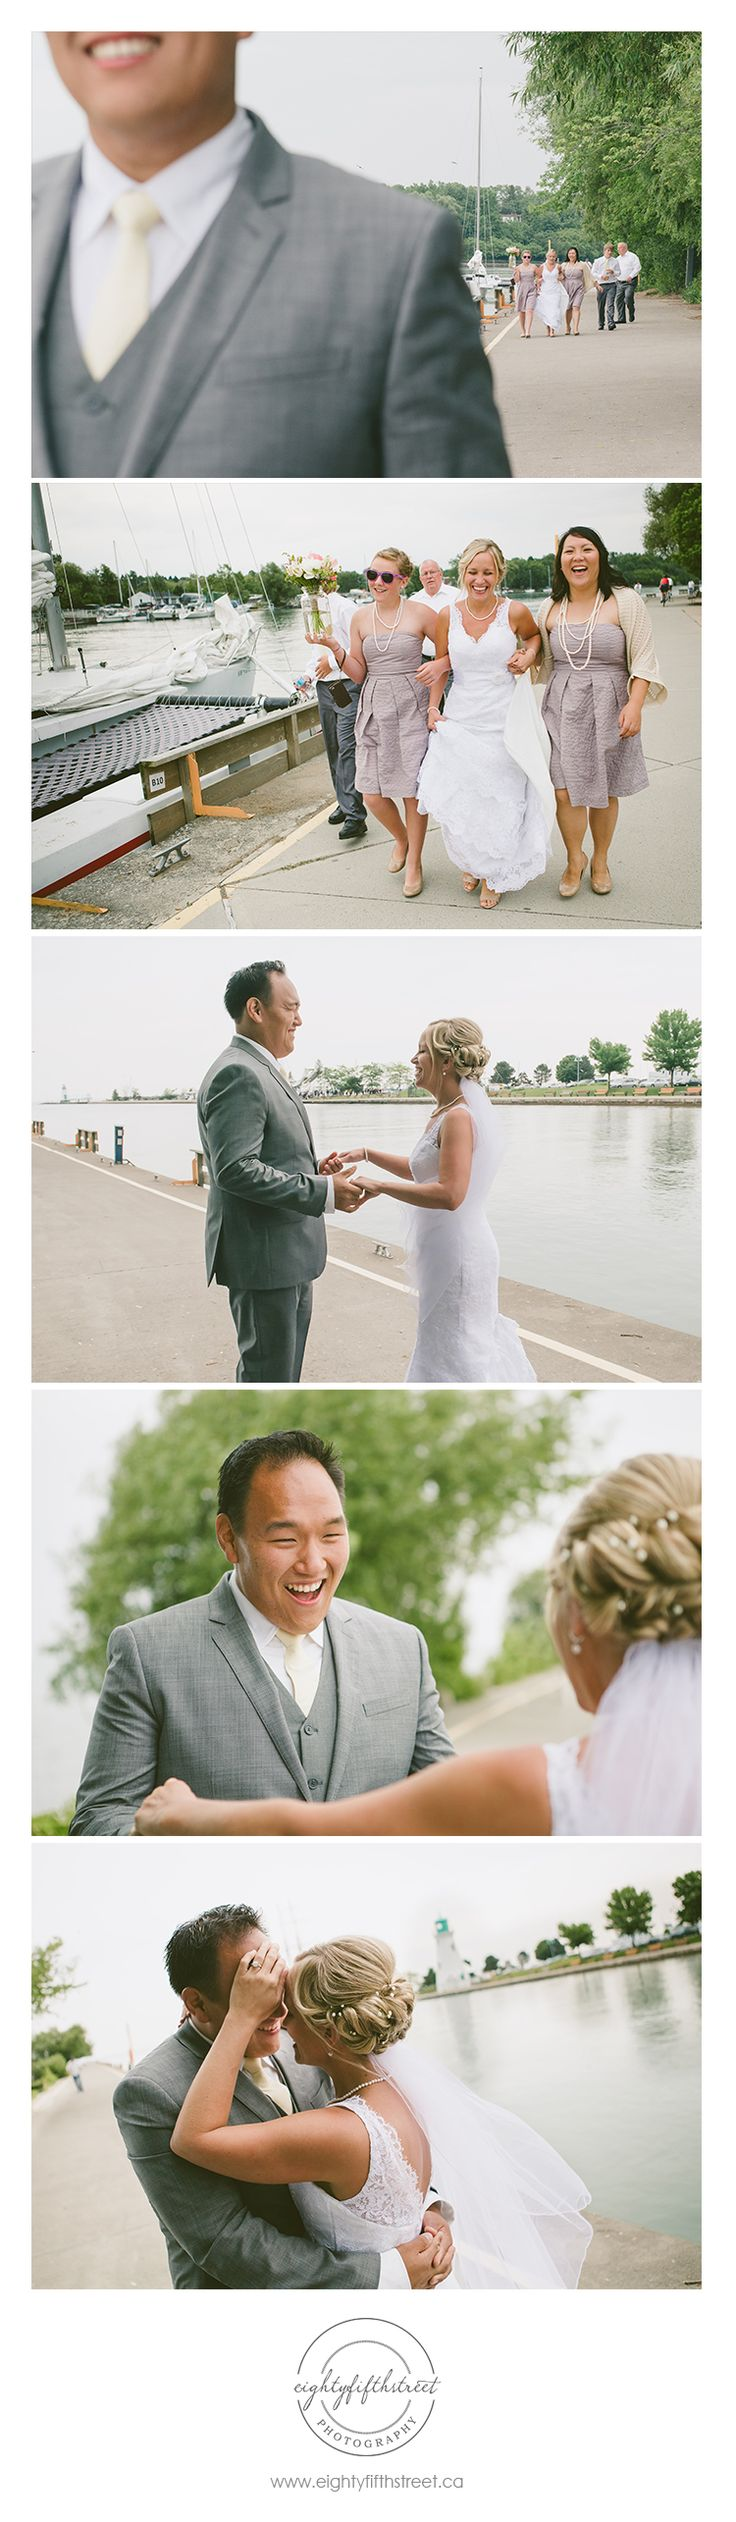 "Adorable ""first look"" photos taken at Port Dalhousie! The groom's reaction to seeing his beautiful bride for the first time was soooo priceless. #eightyfifthstreet #photography #stcatharines #wedding #groom #bride #firstlook"